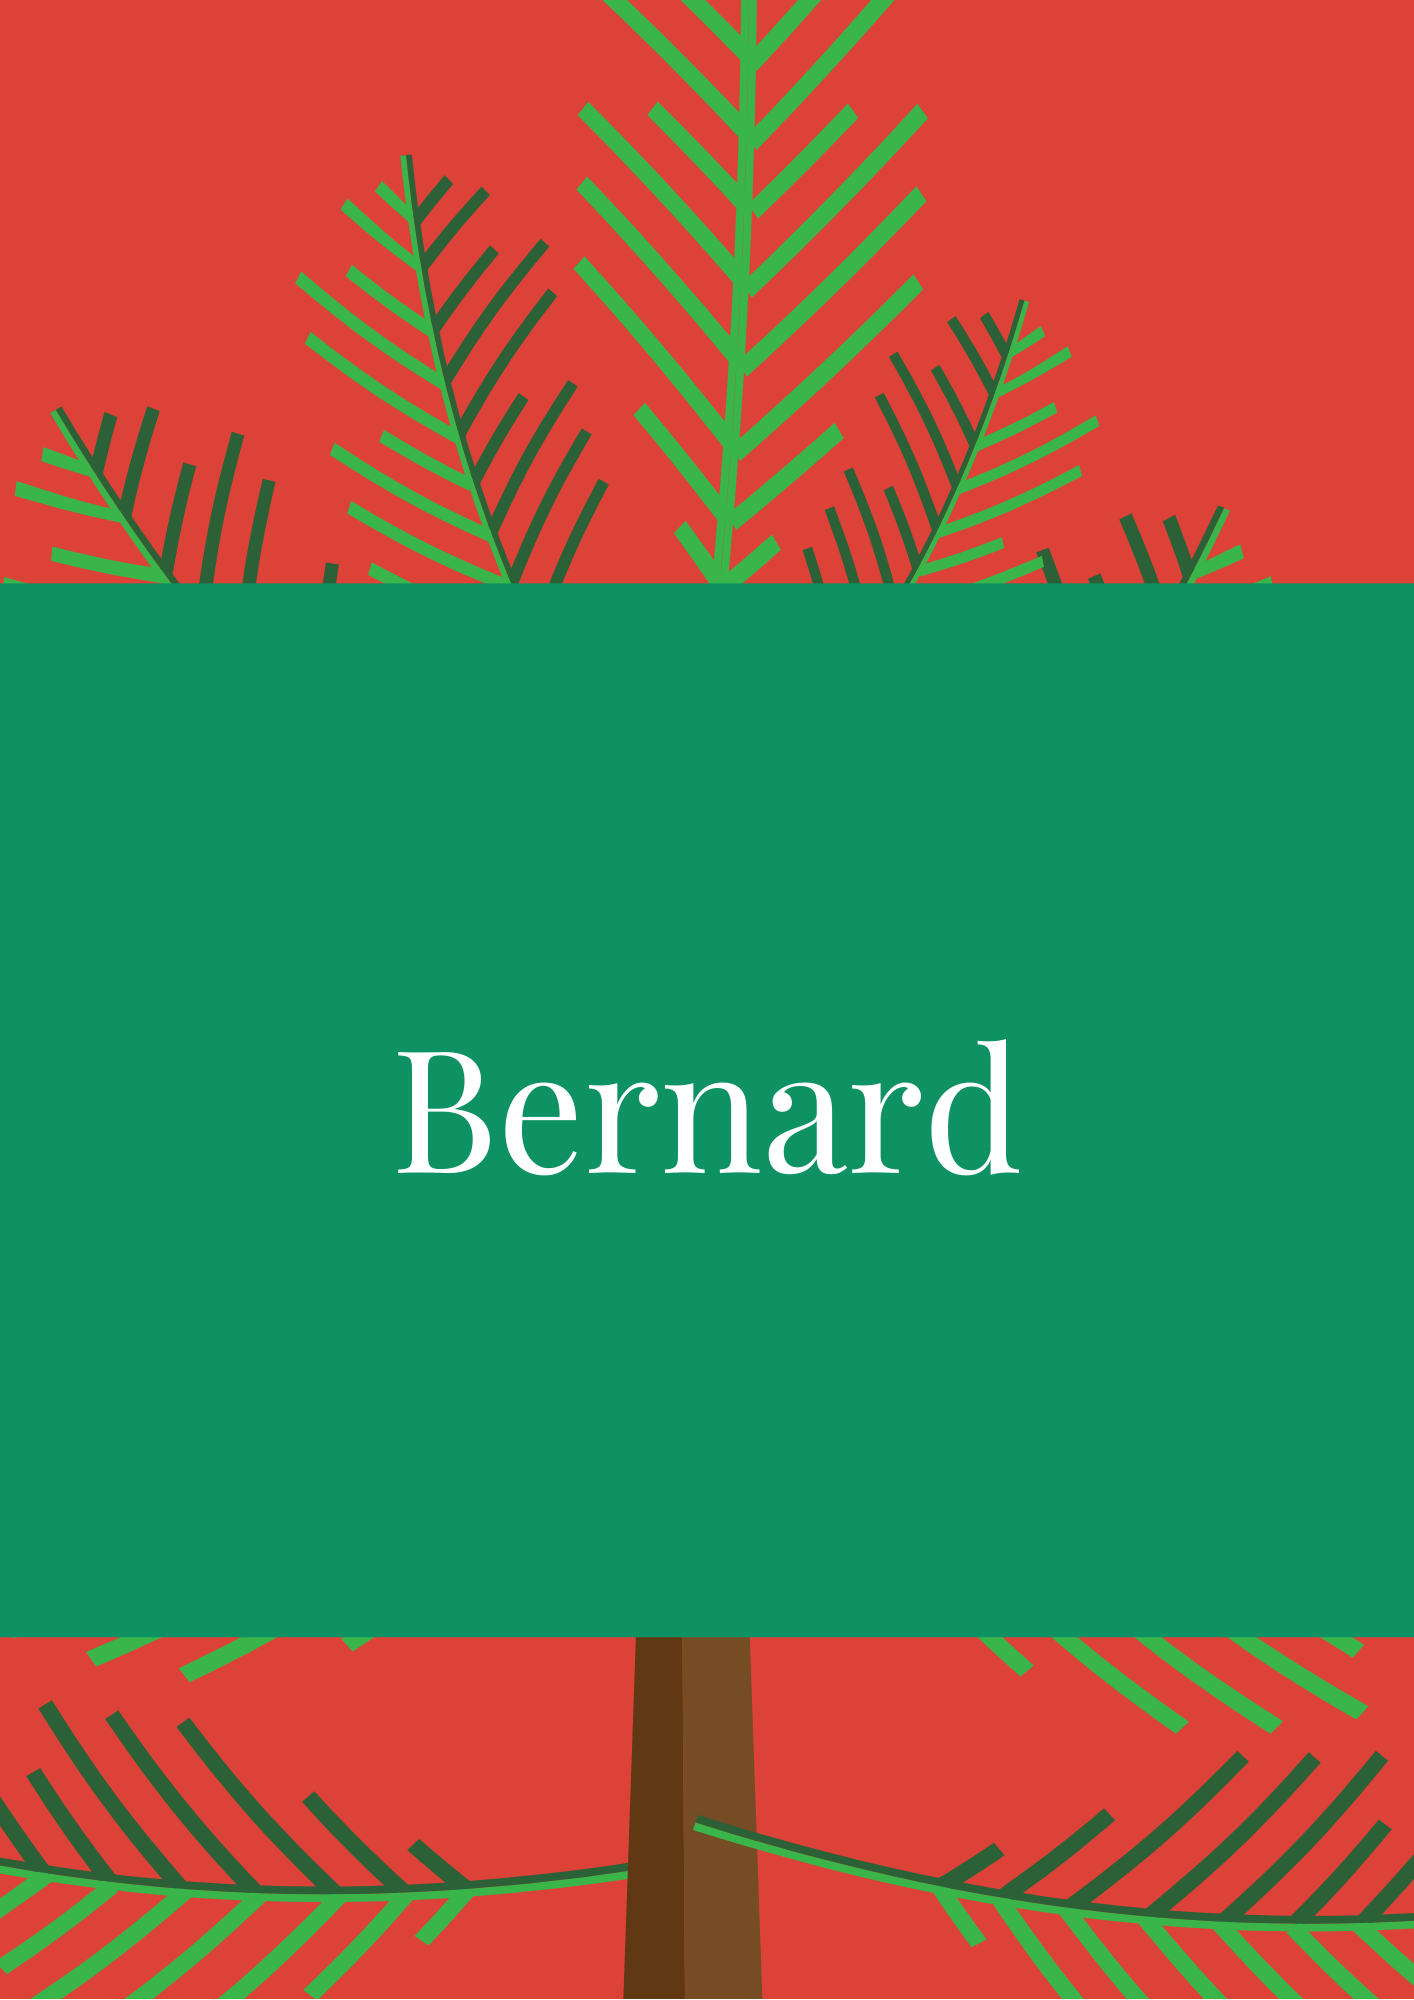 Bernard Elf Names